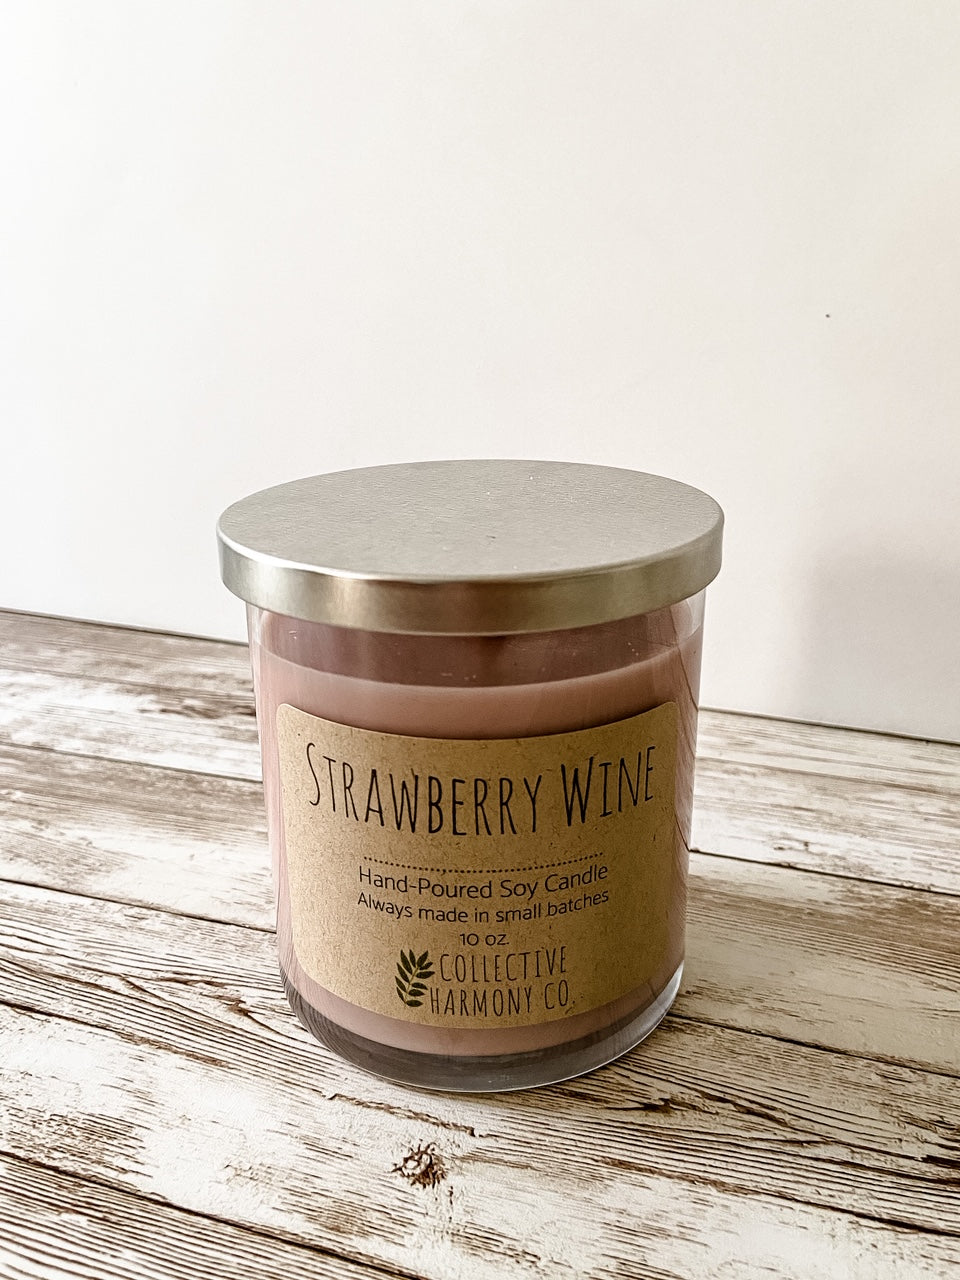 Strawberry Wine Soy Candle, large - Salt and Branch